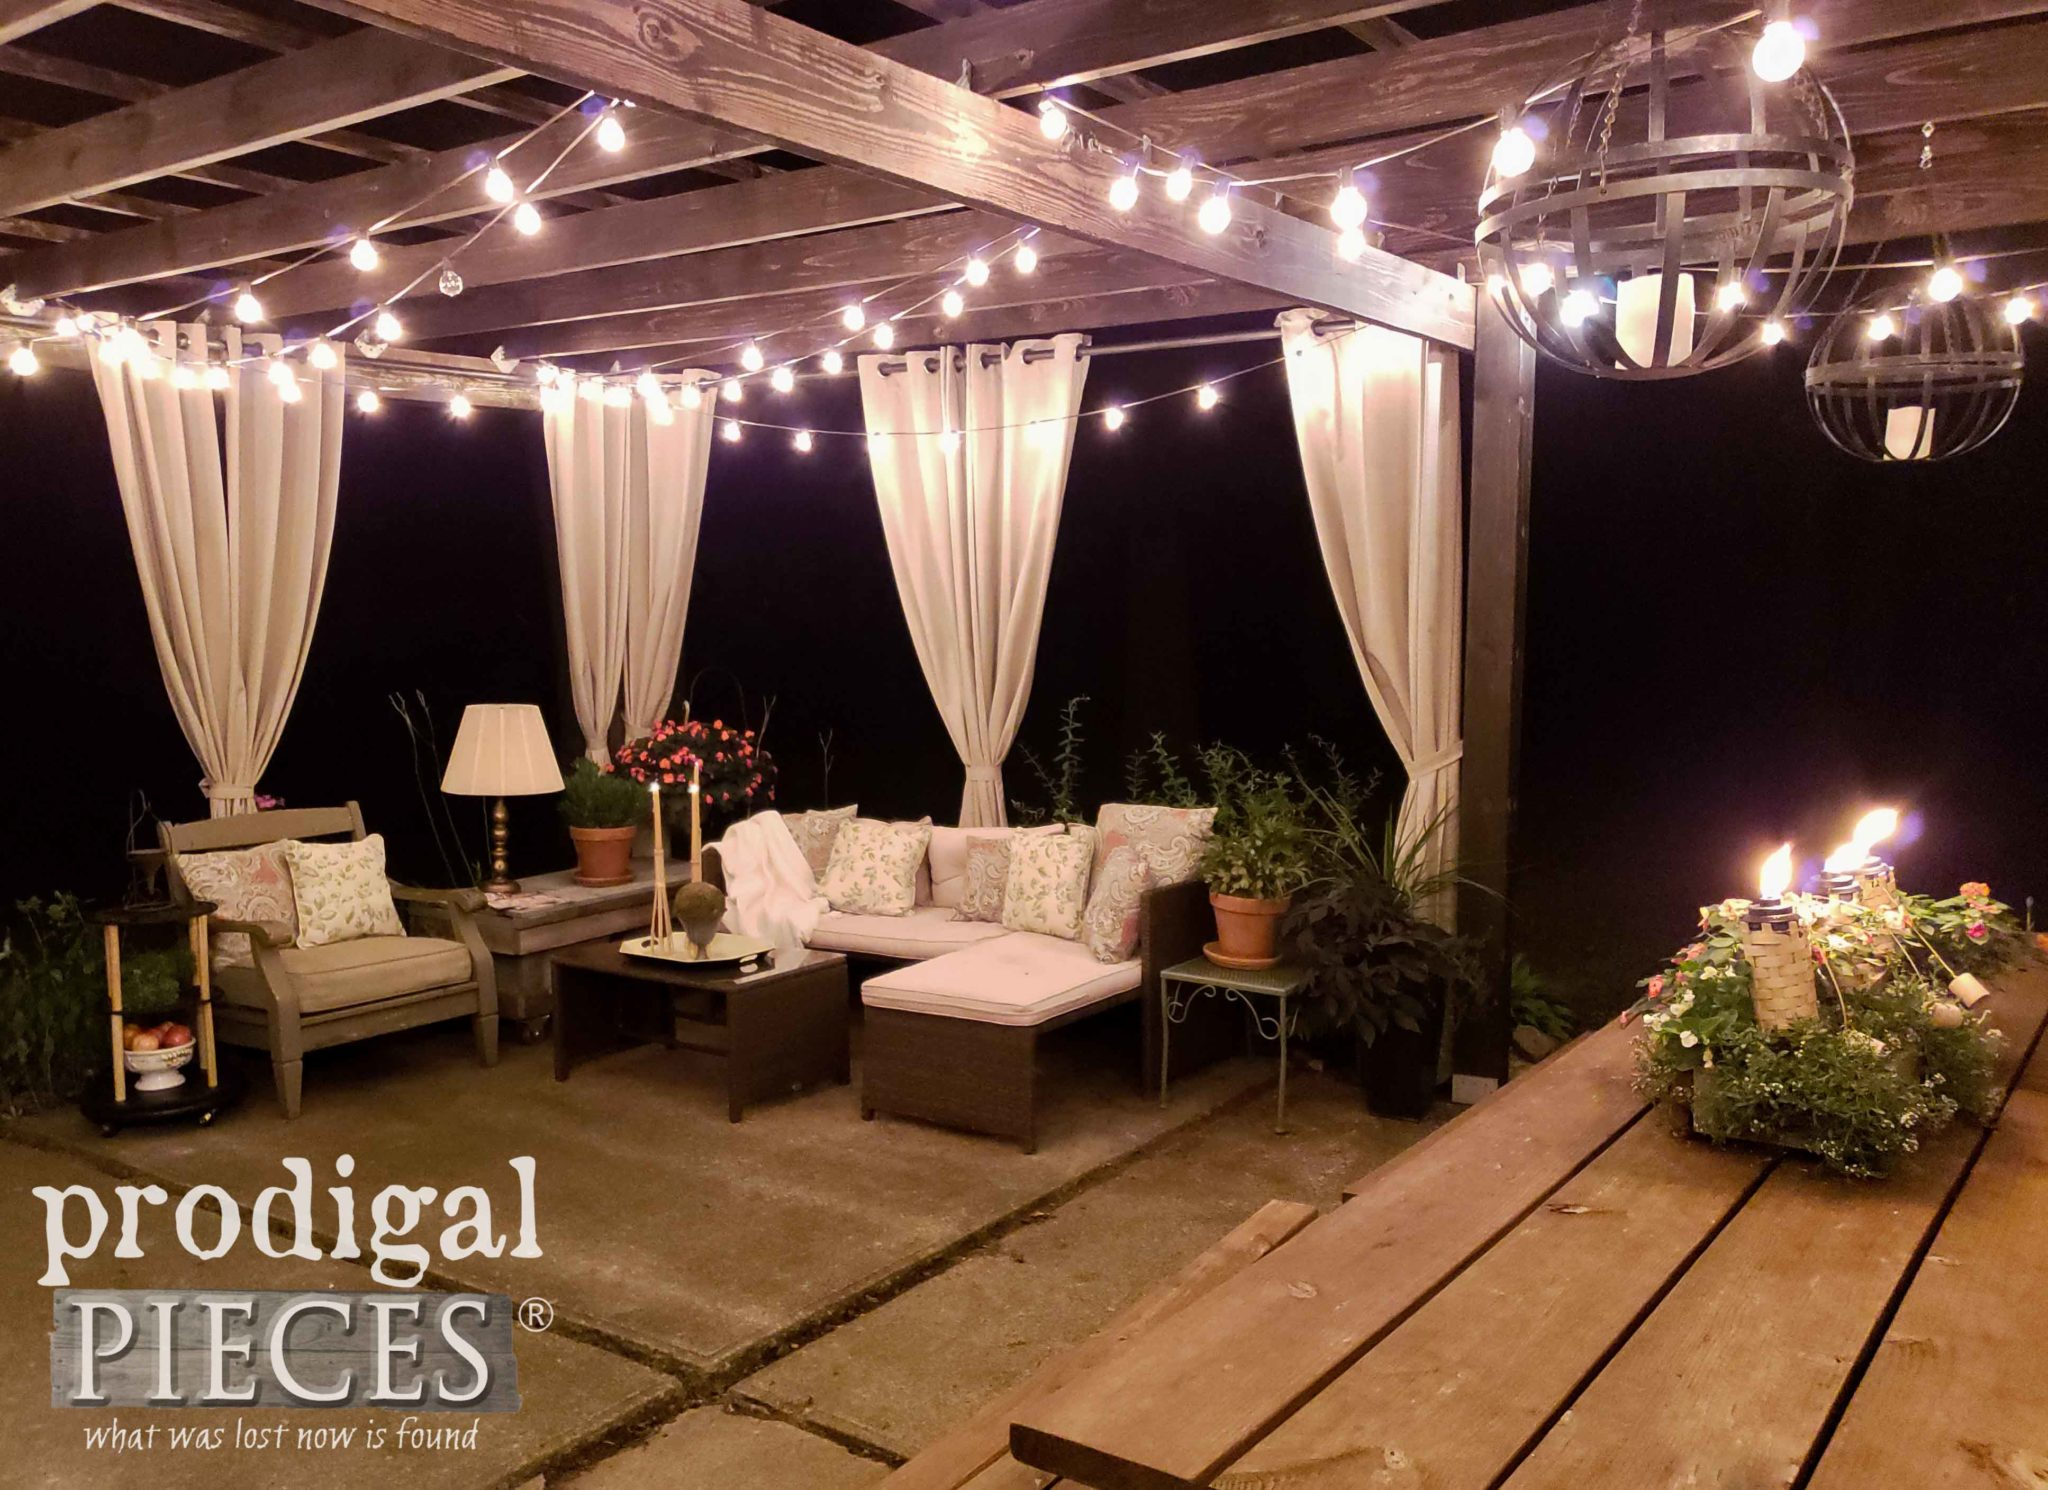 Patio Pergola with Lights at Night by Prodigal Pieces | prodigalpieces.com